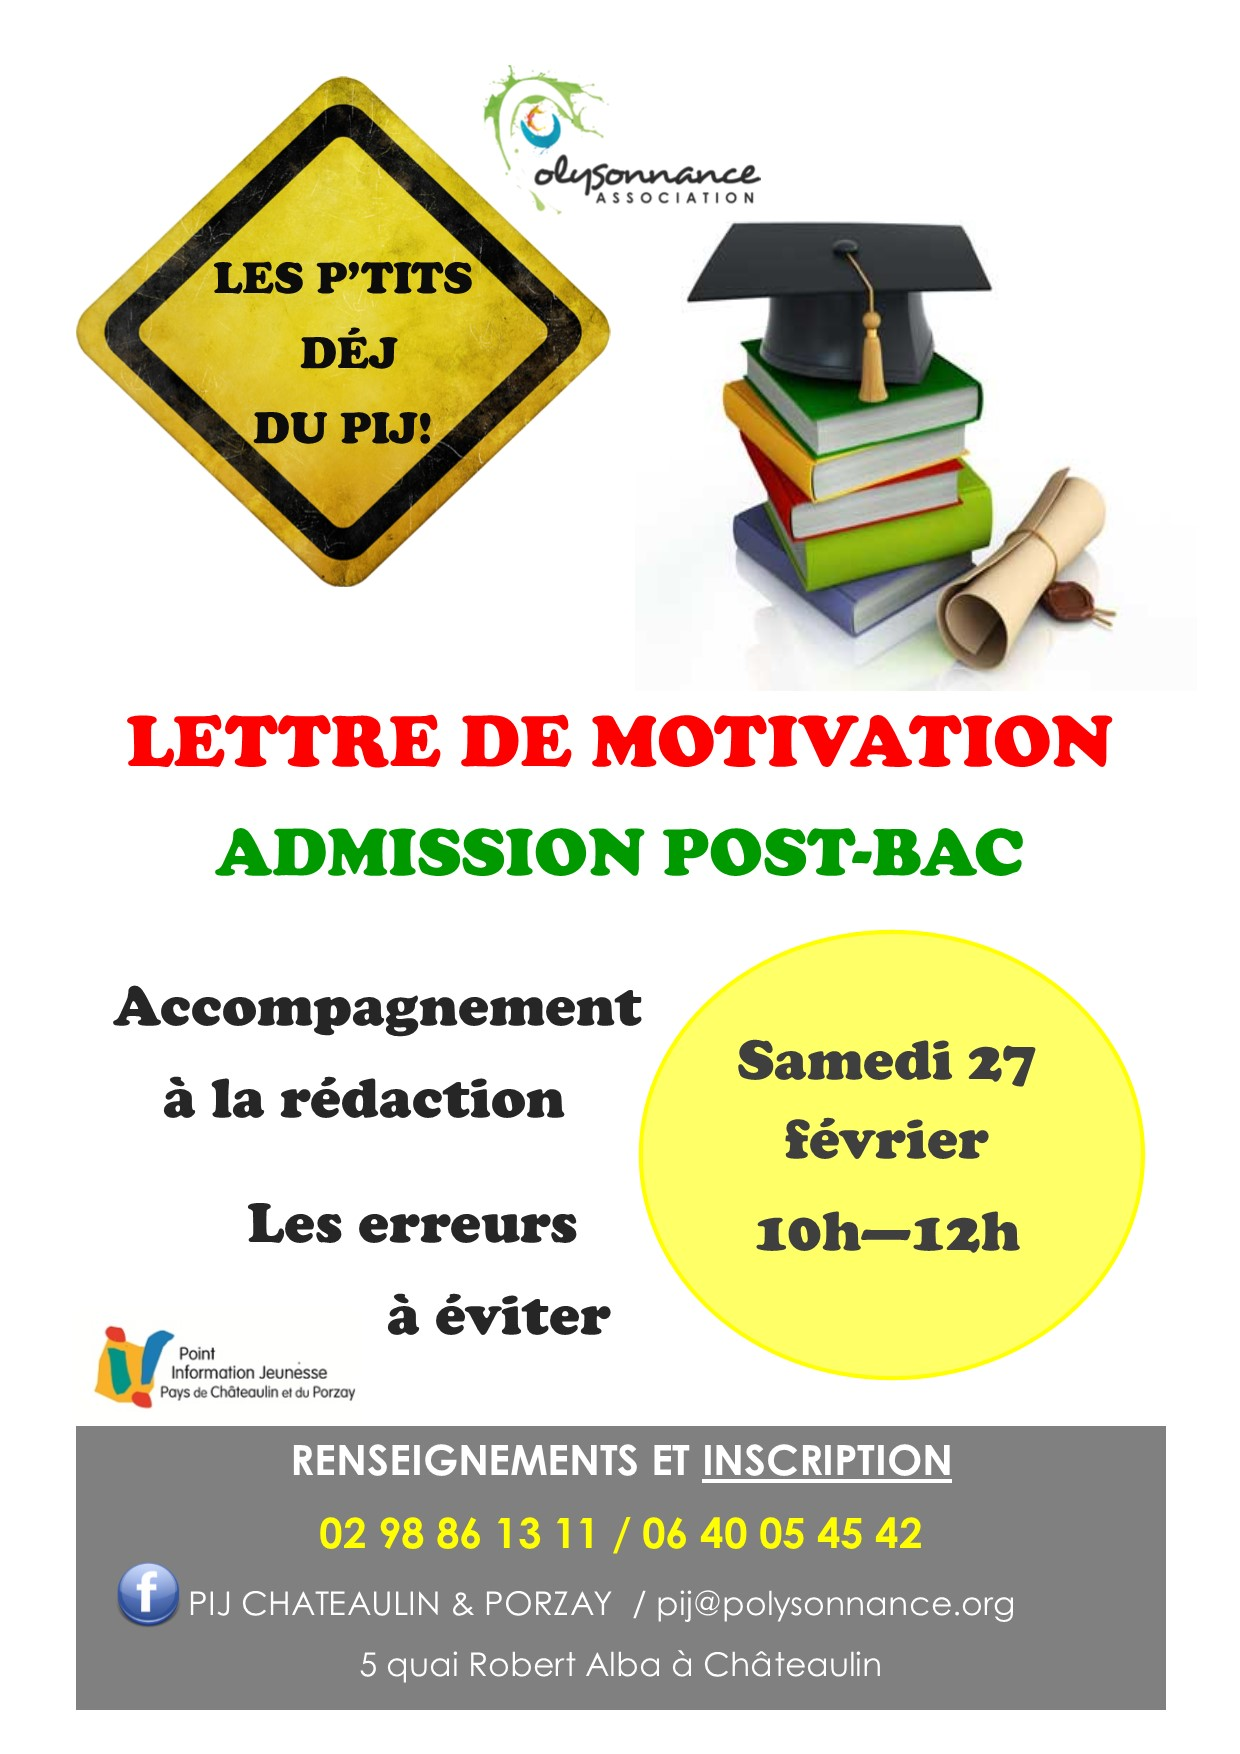 27 février P'tit déj du PIJ « Lettre de motivation admission post bac »